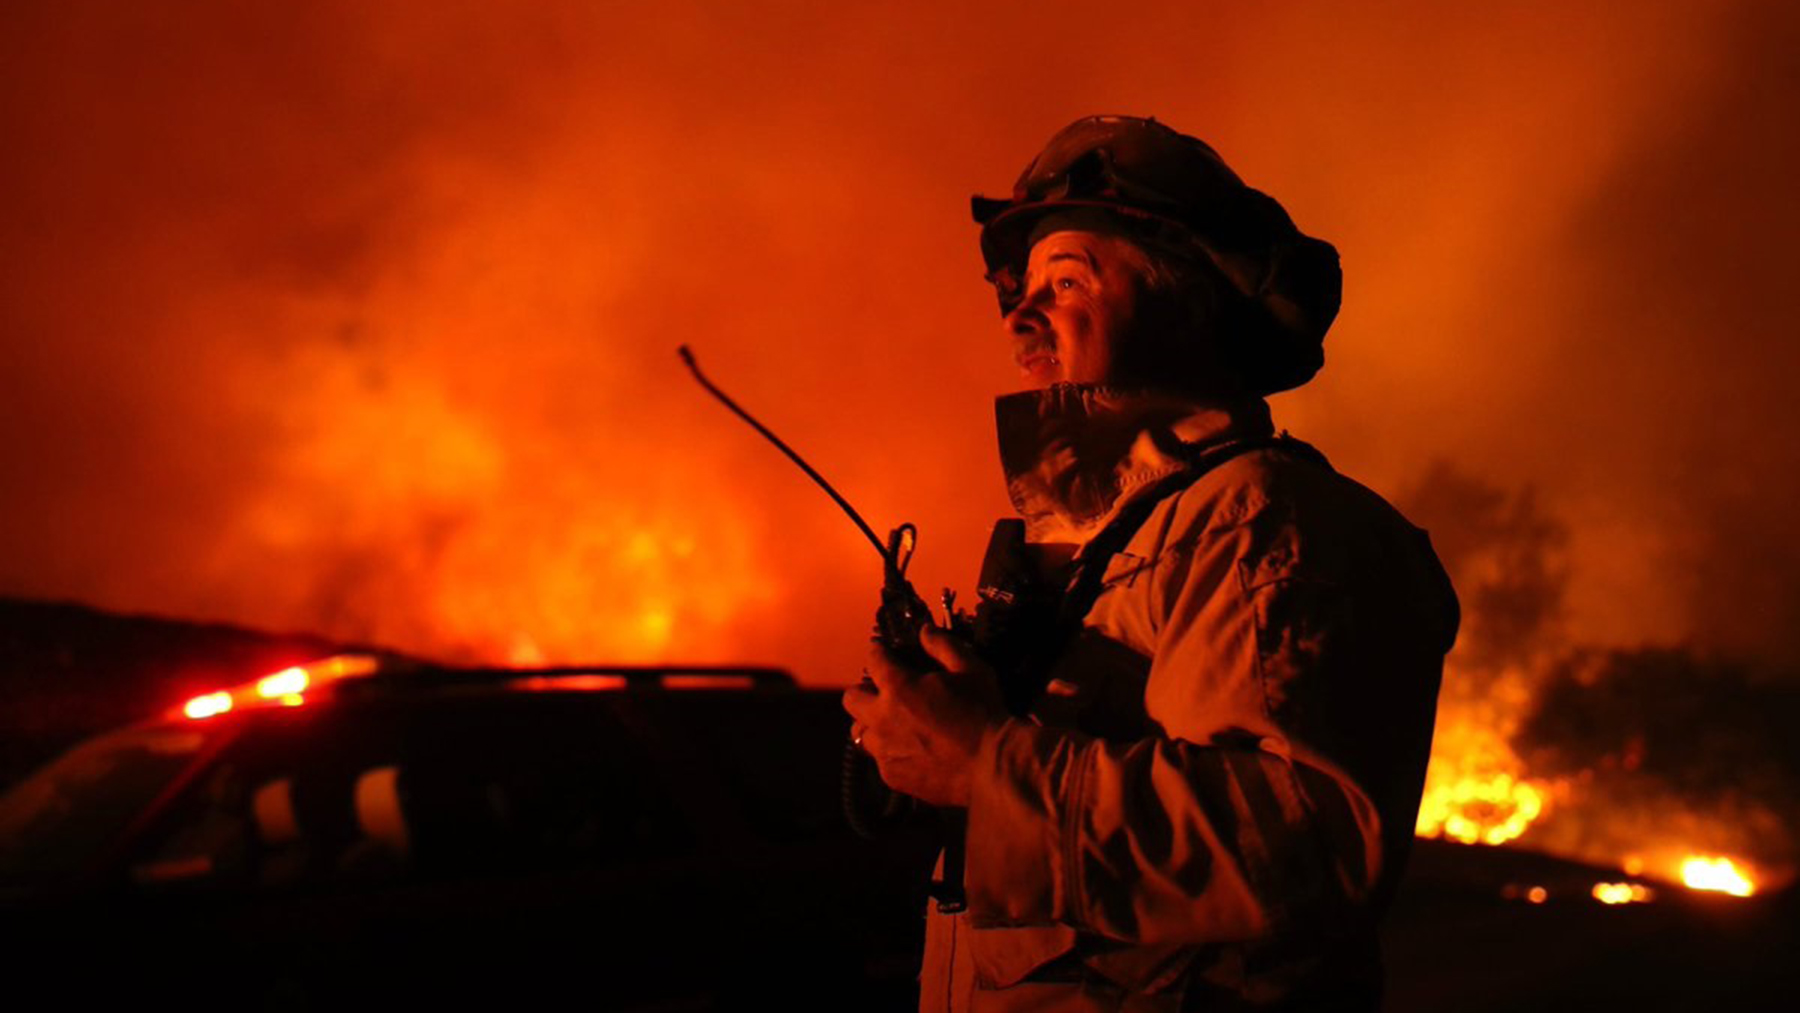 A firefighter, part of CAL FIRE's response to the Kincade Fire, takes in the blaze. (Photo courtesy of CAL FIRE San Luis Obispo)